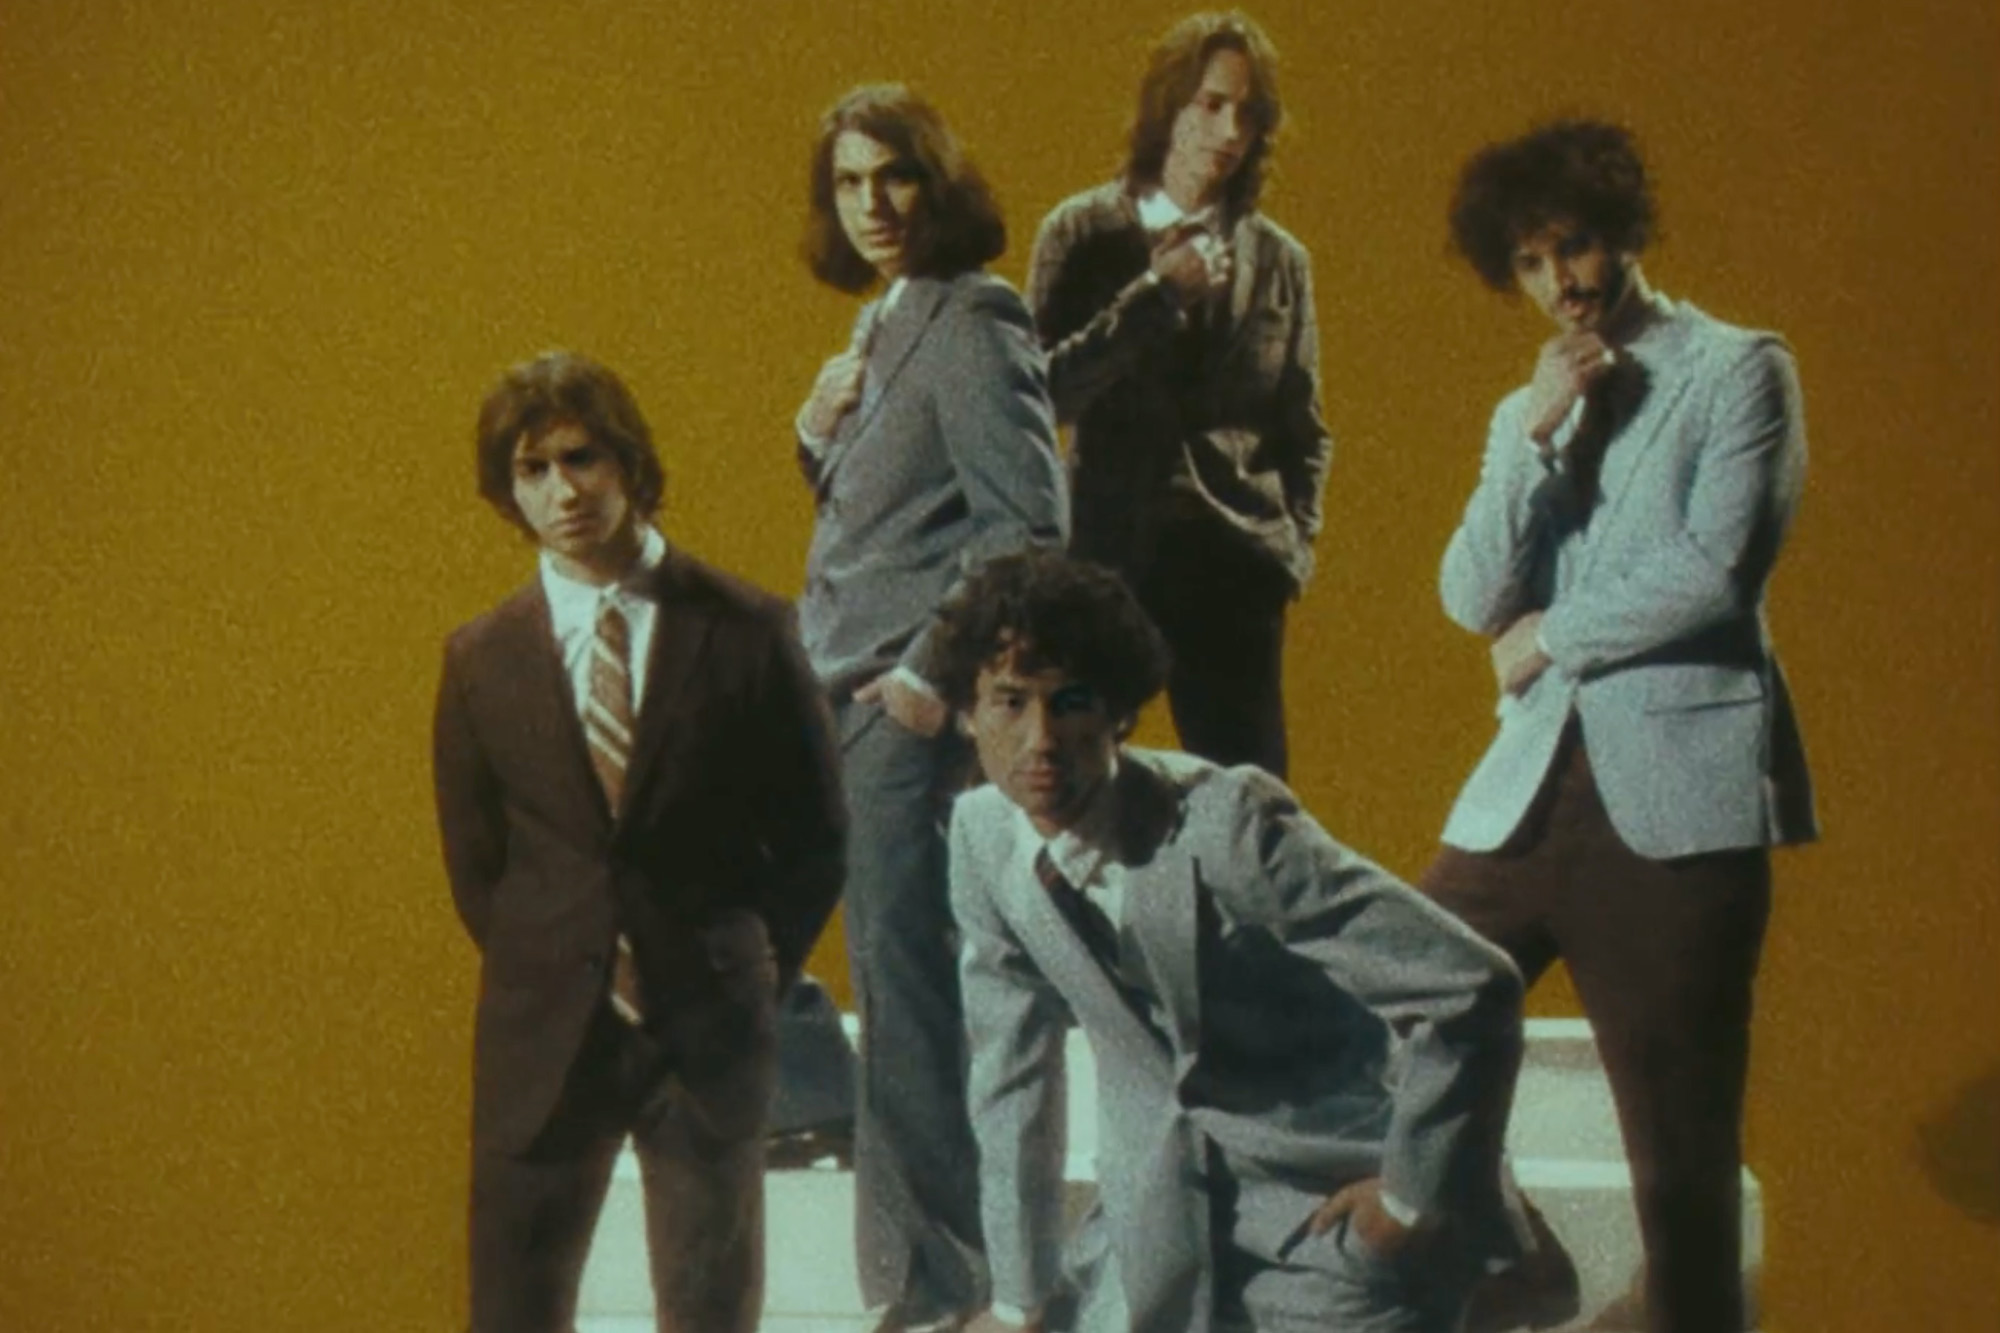 The Strokes' 'Bad Decisions' Video Takes Us Back to a Very Surreal Seventies